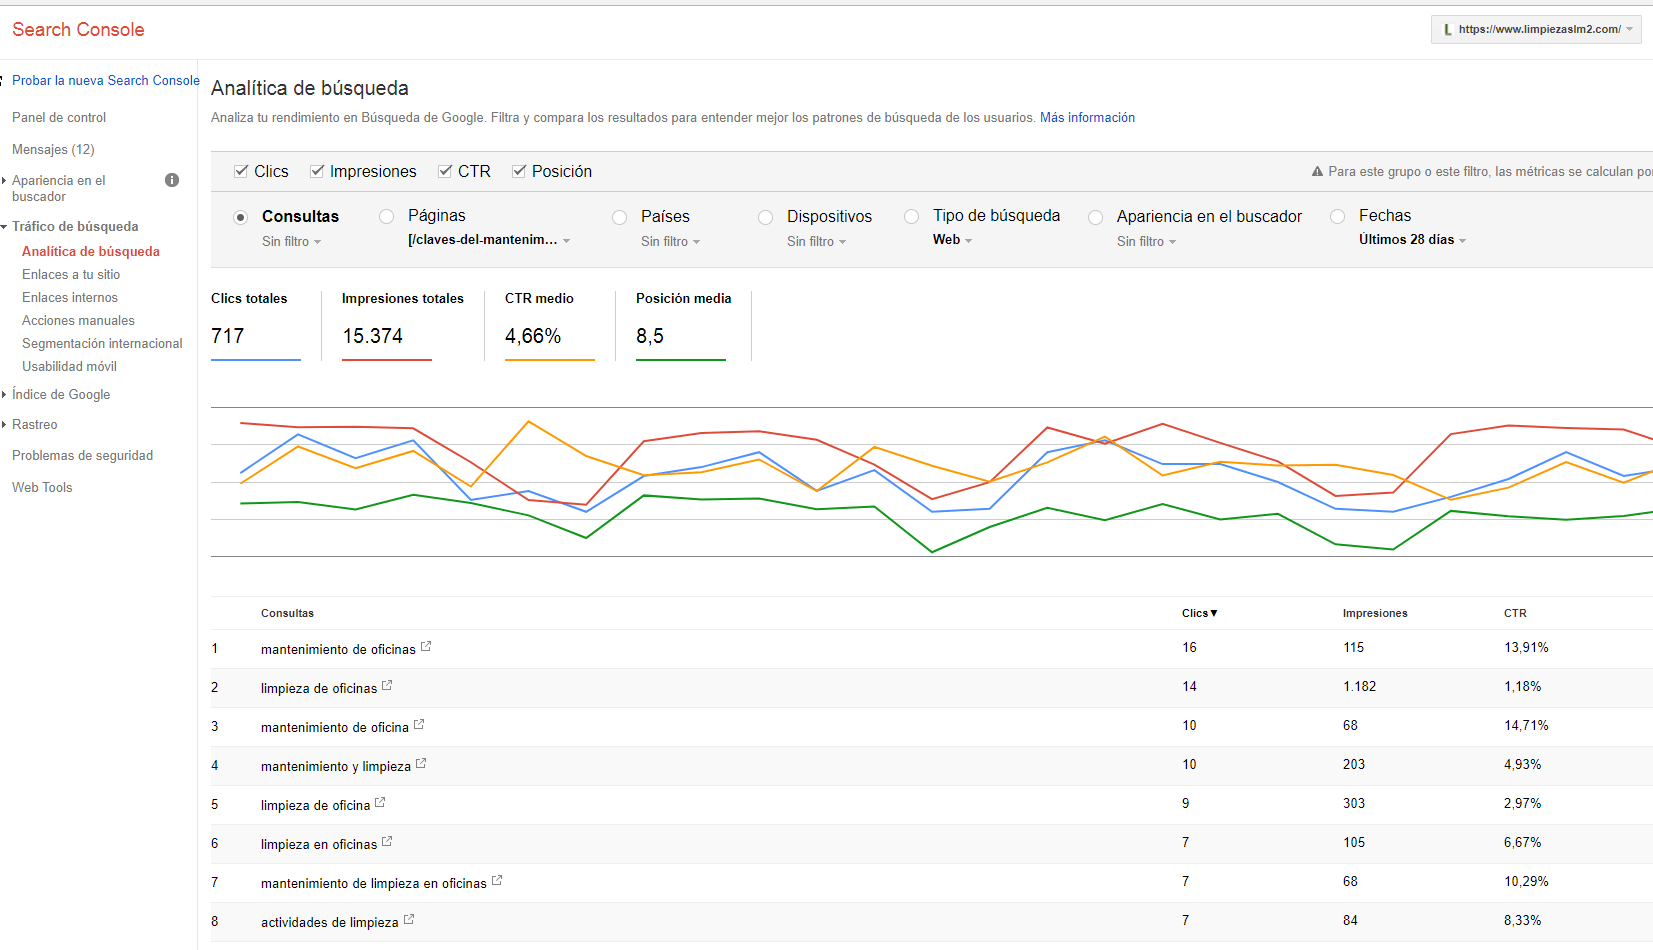 analitica de busqueda search console